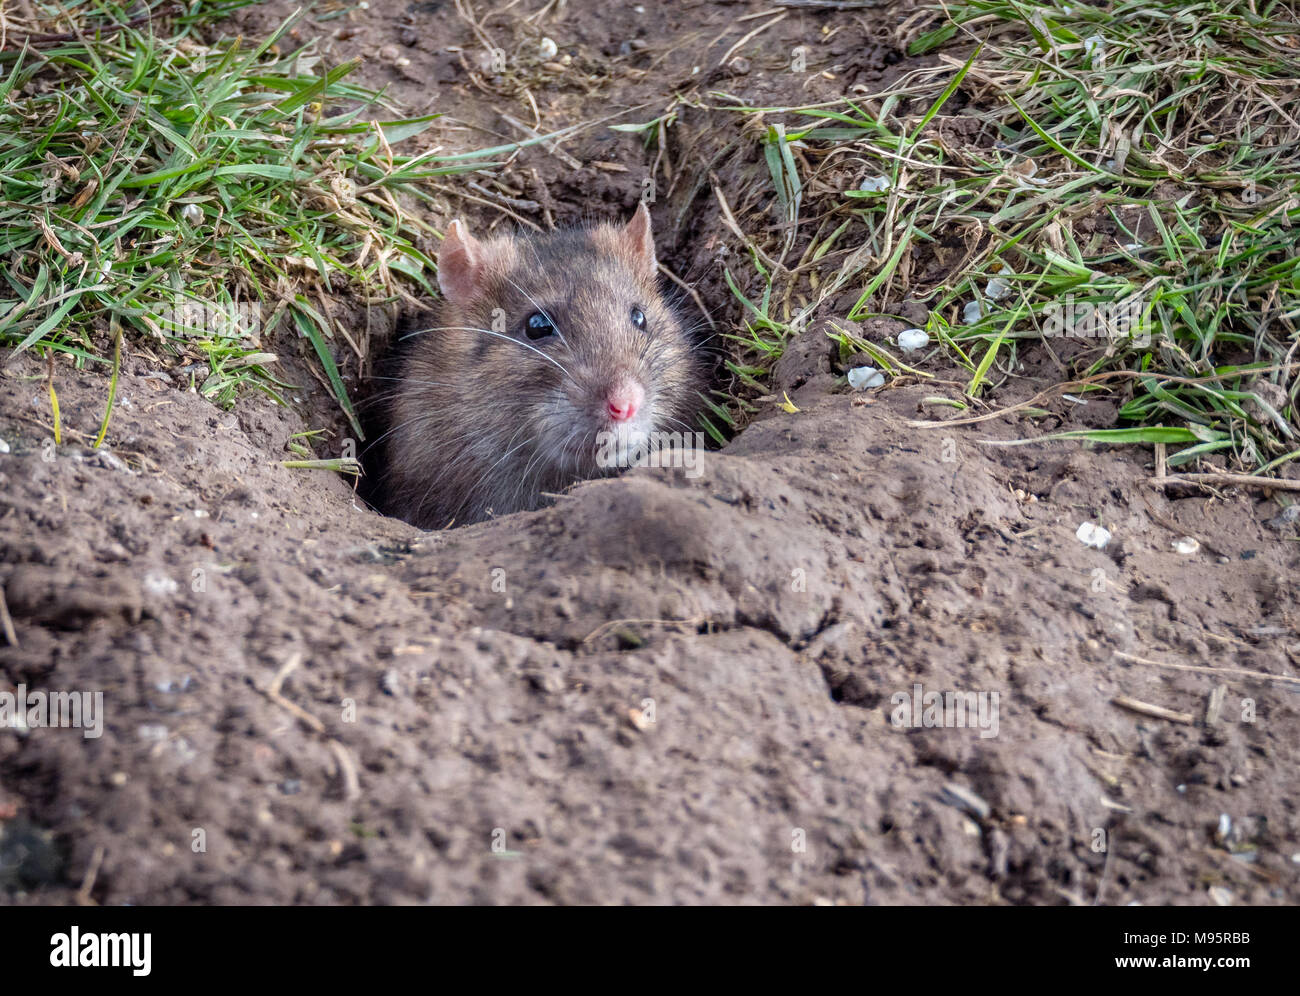 Brown rat Rattus norvegicus peeking out of its burrow in a sunny bank in Gloucestershire UK - Stock Image